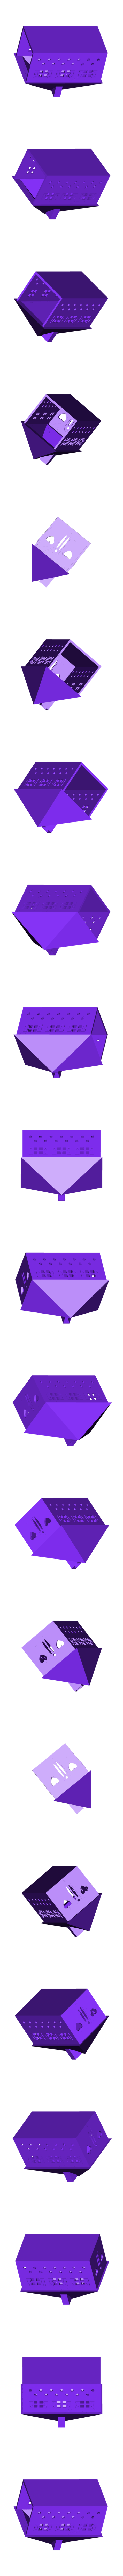 maison 3 1.stl Download STL file SMALL ILLUMINATED HOUSE • 3D printable template, catf3d